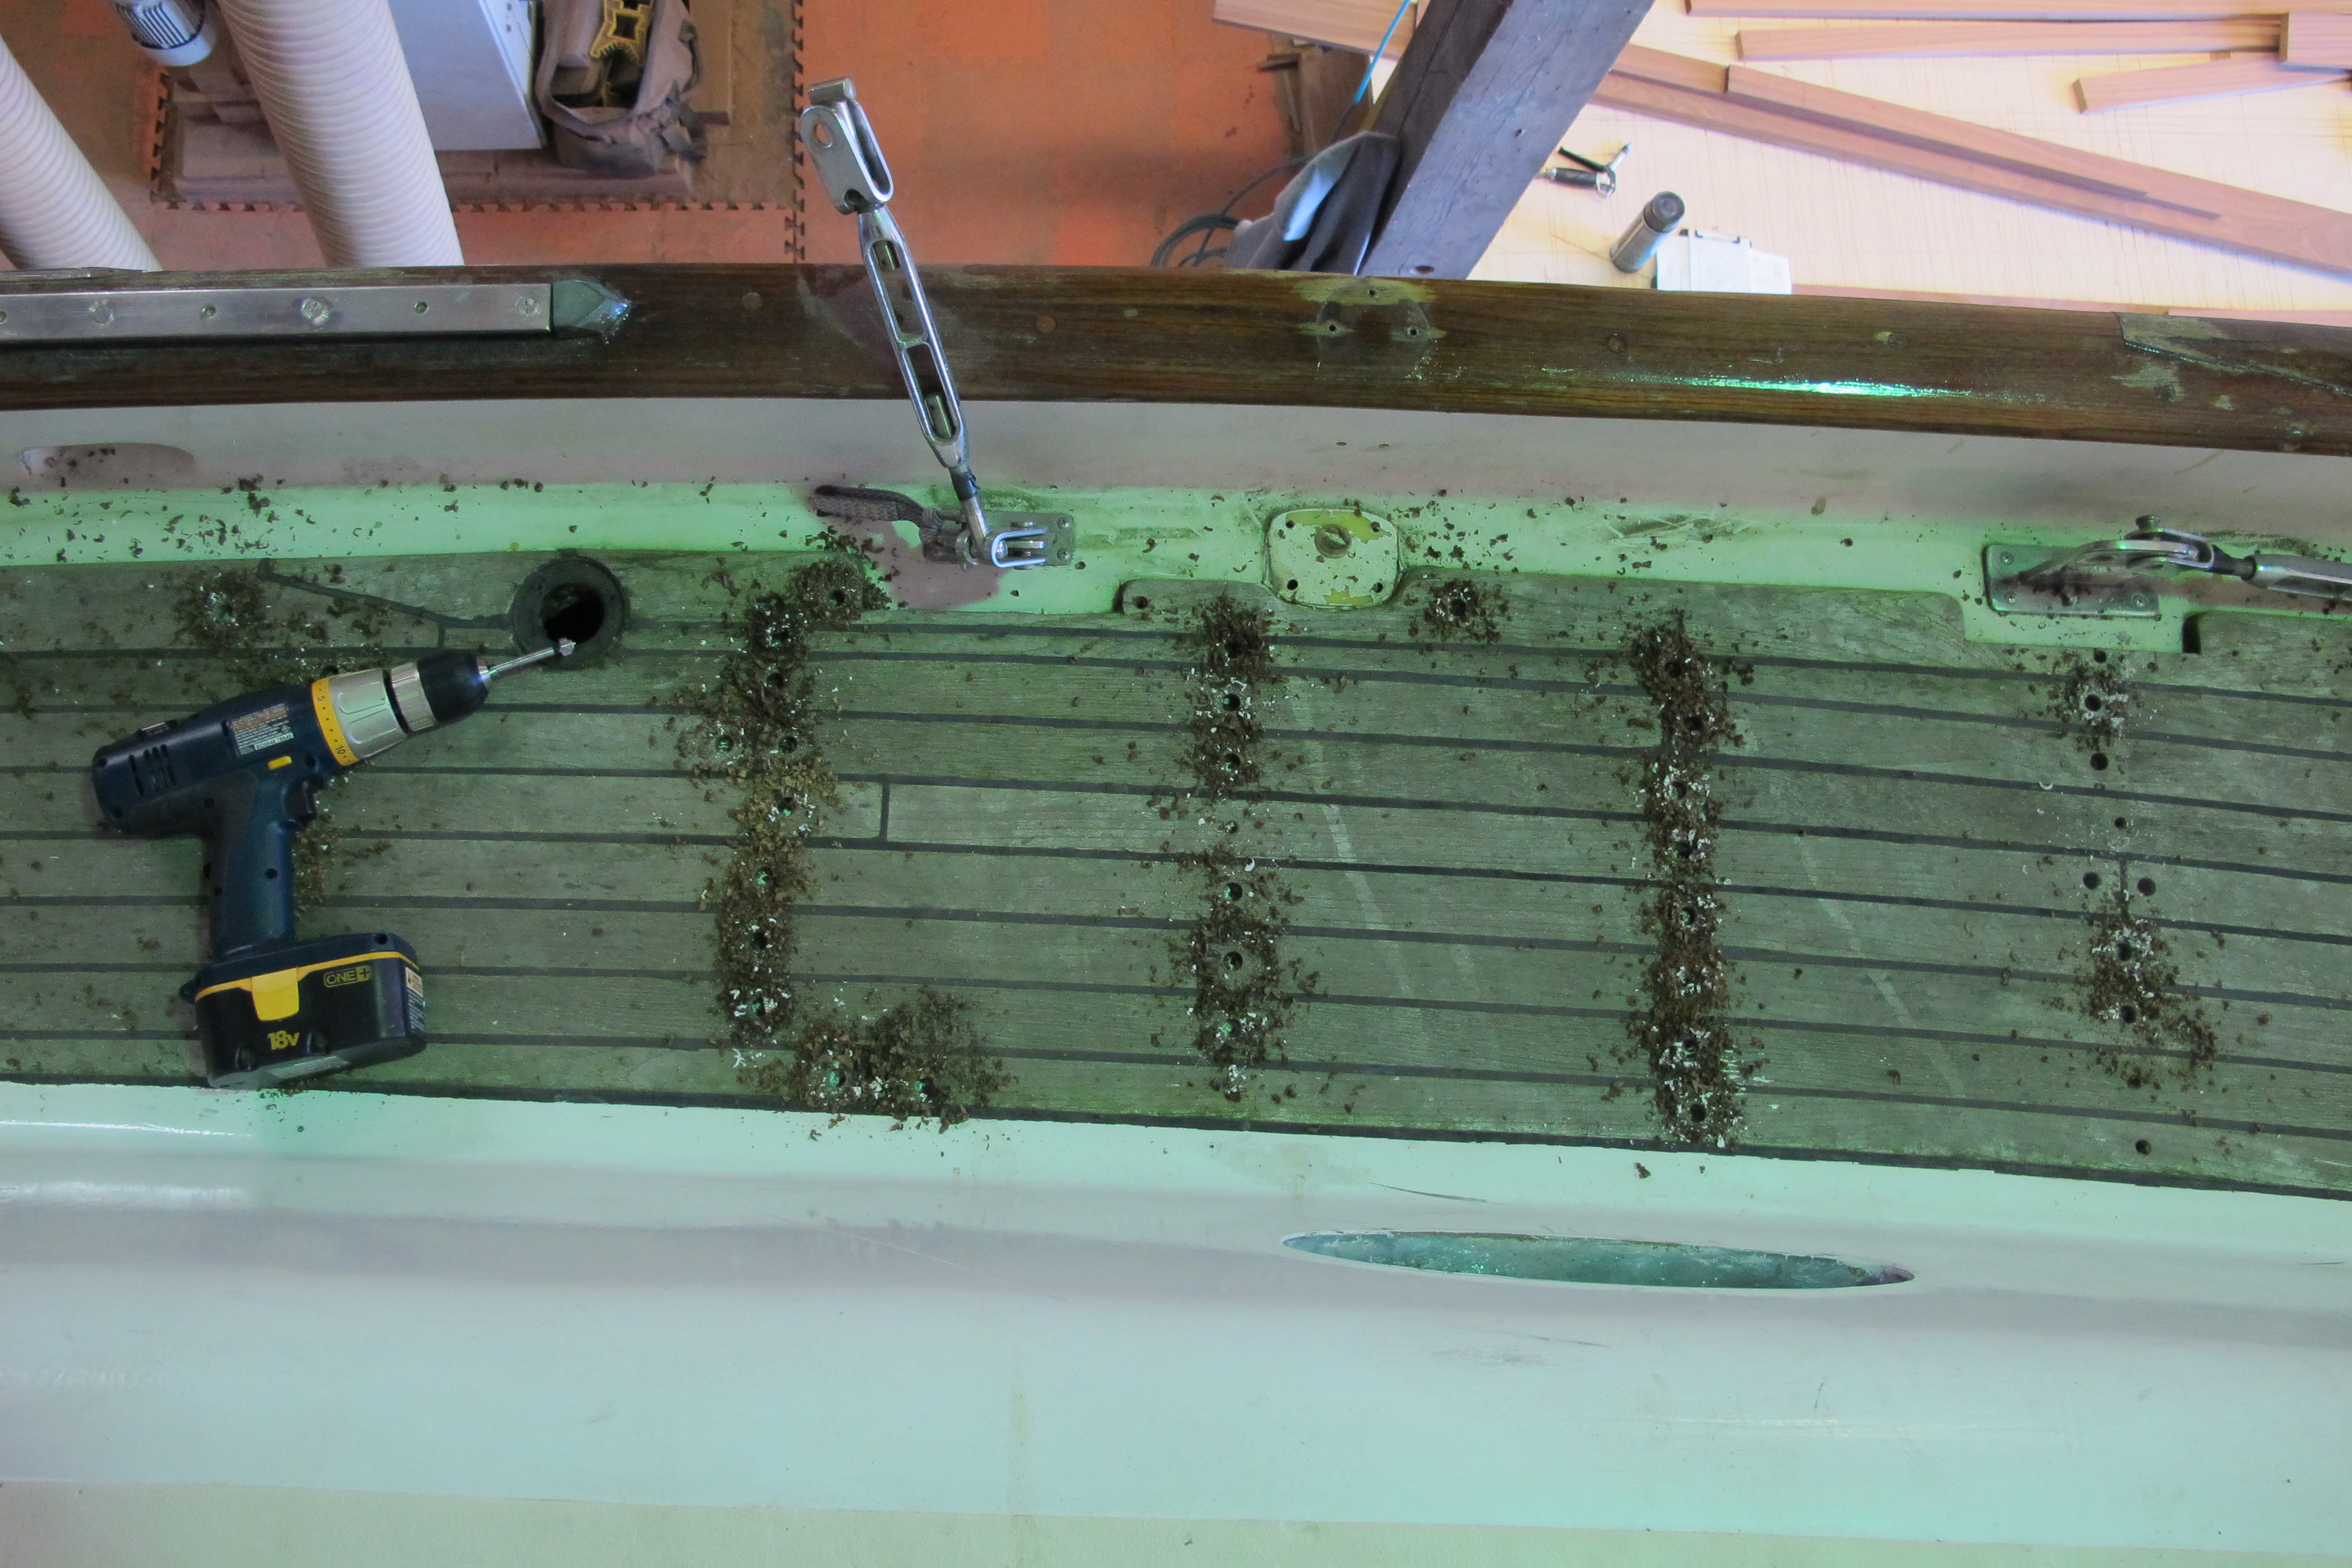 Drilling screws out of the deck